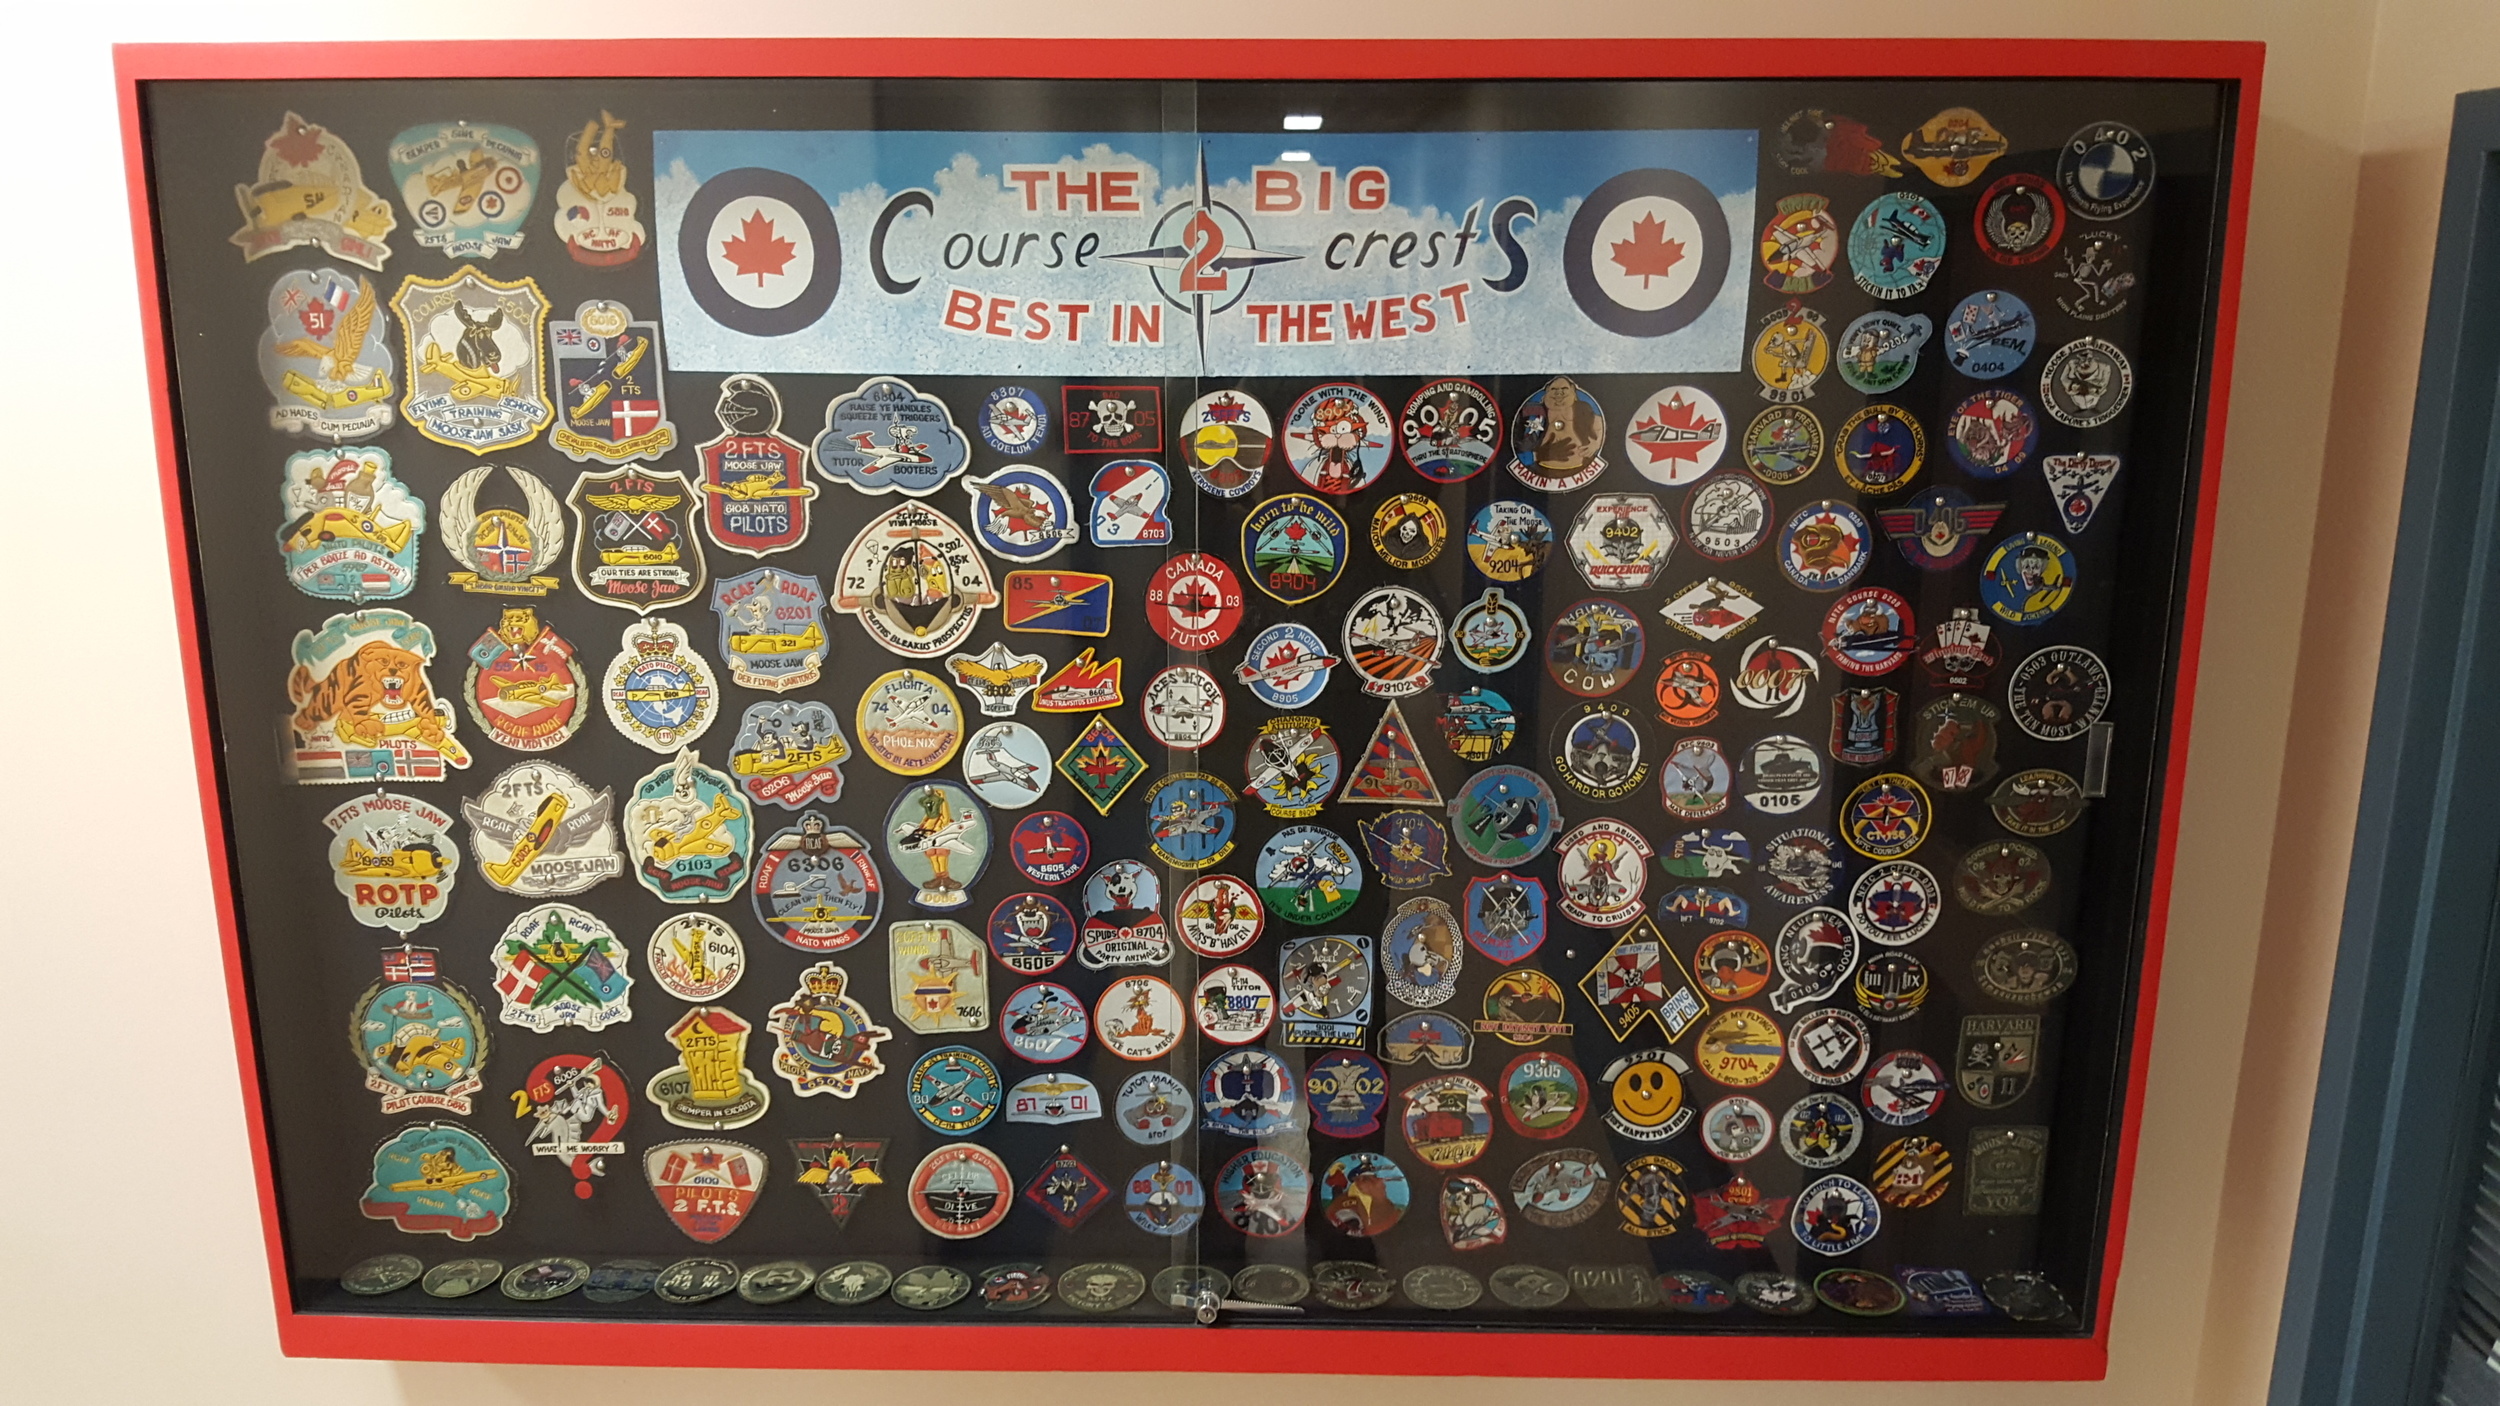 Course patches from past courses (going back decades!)